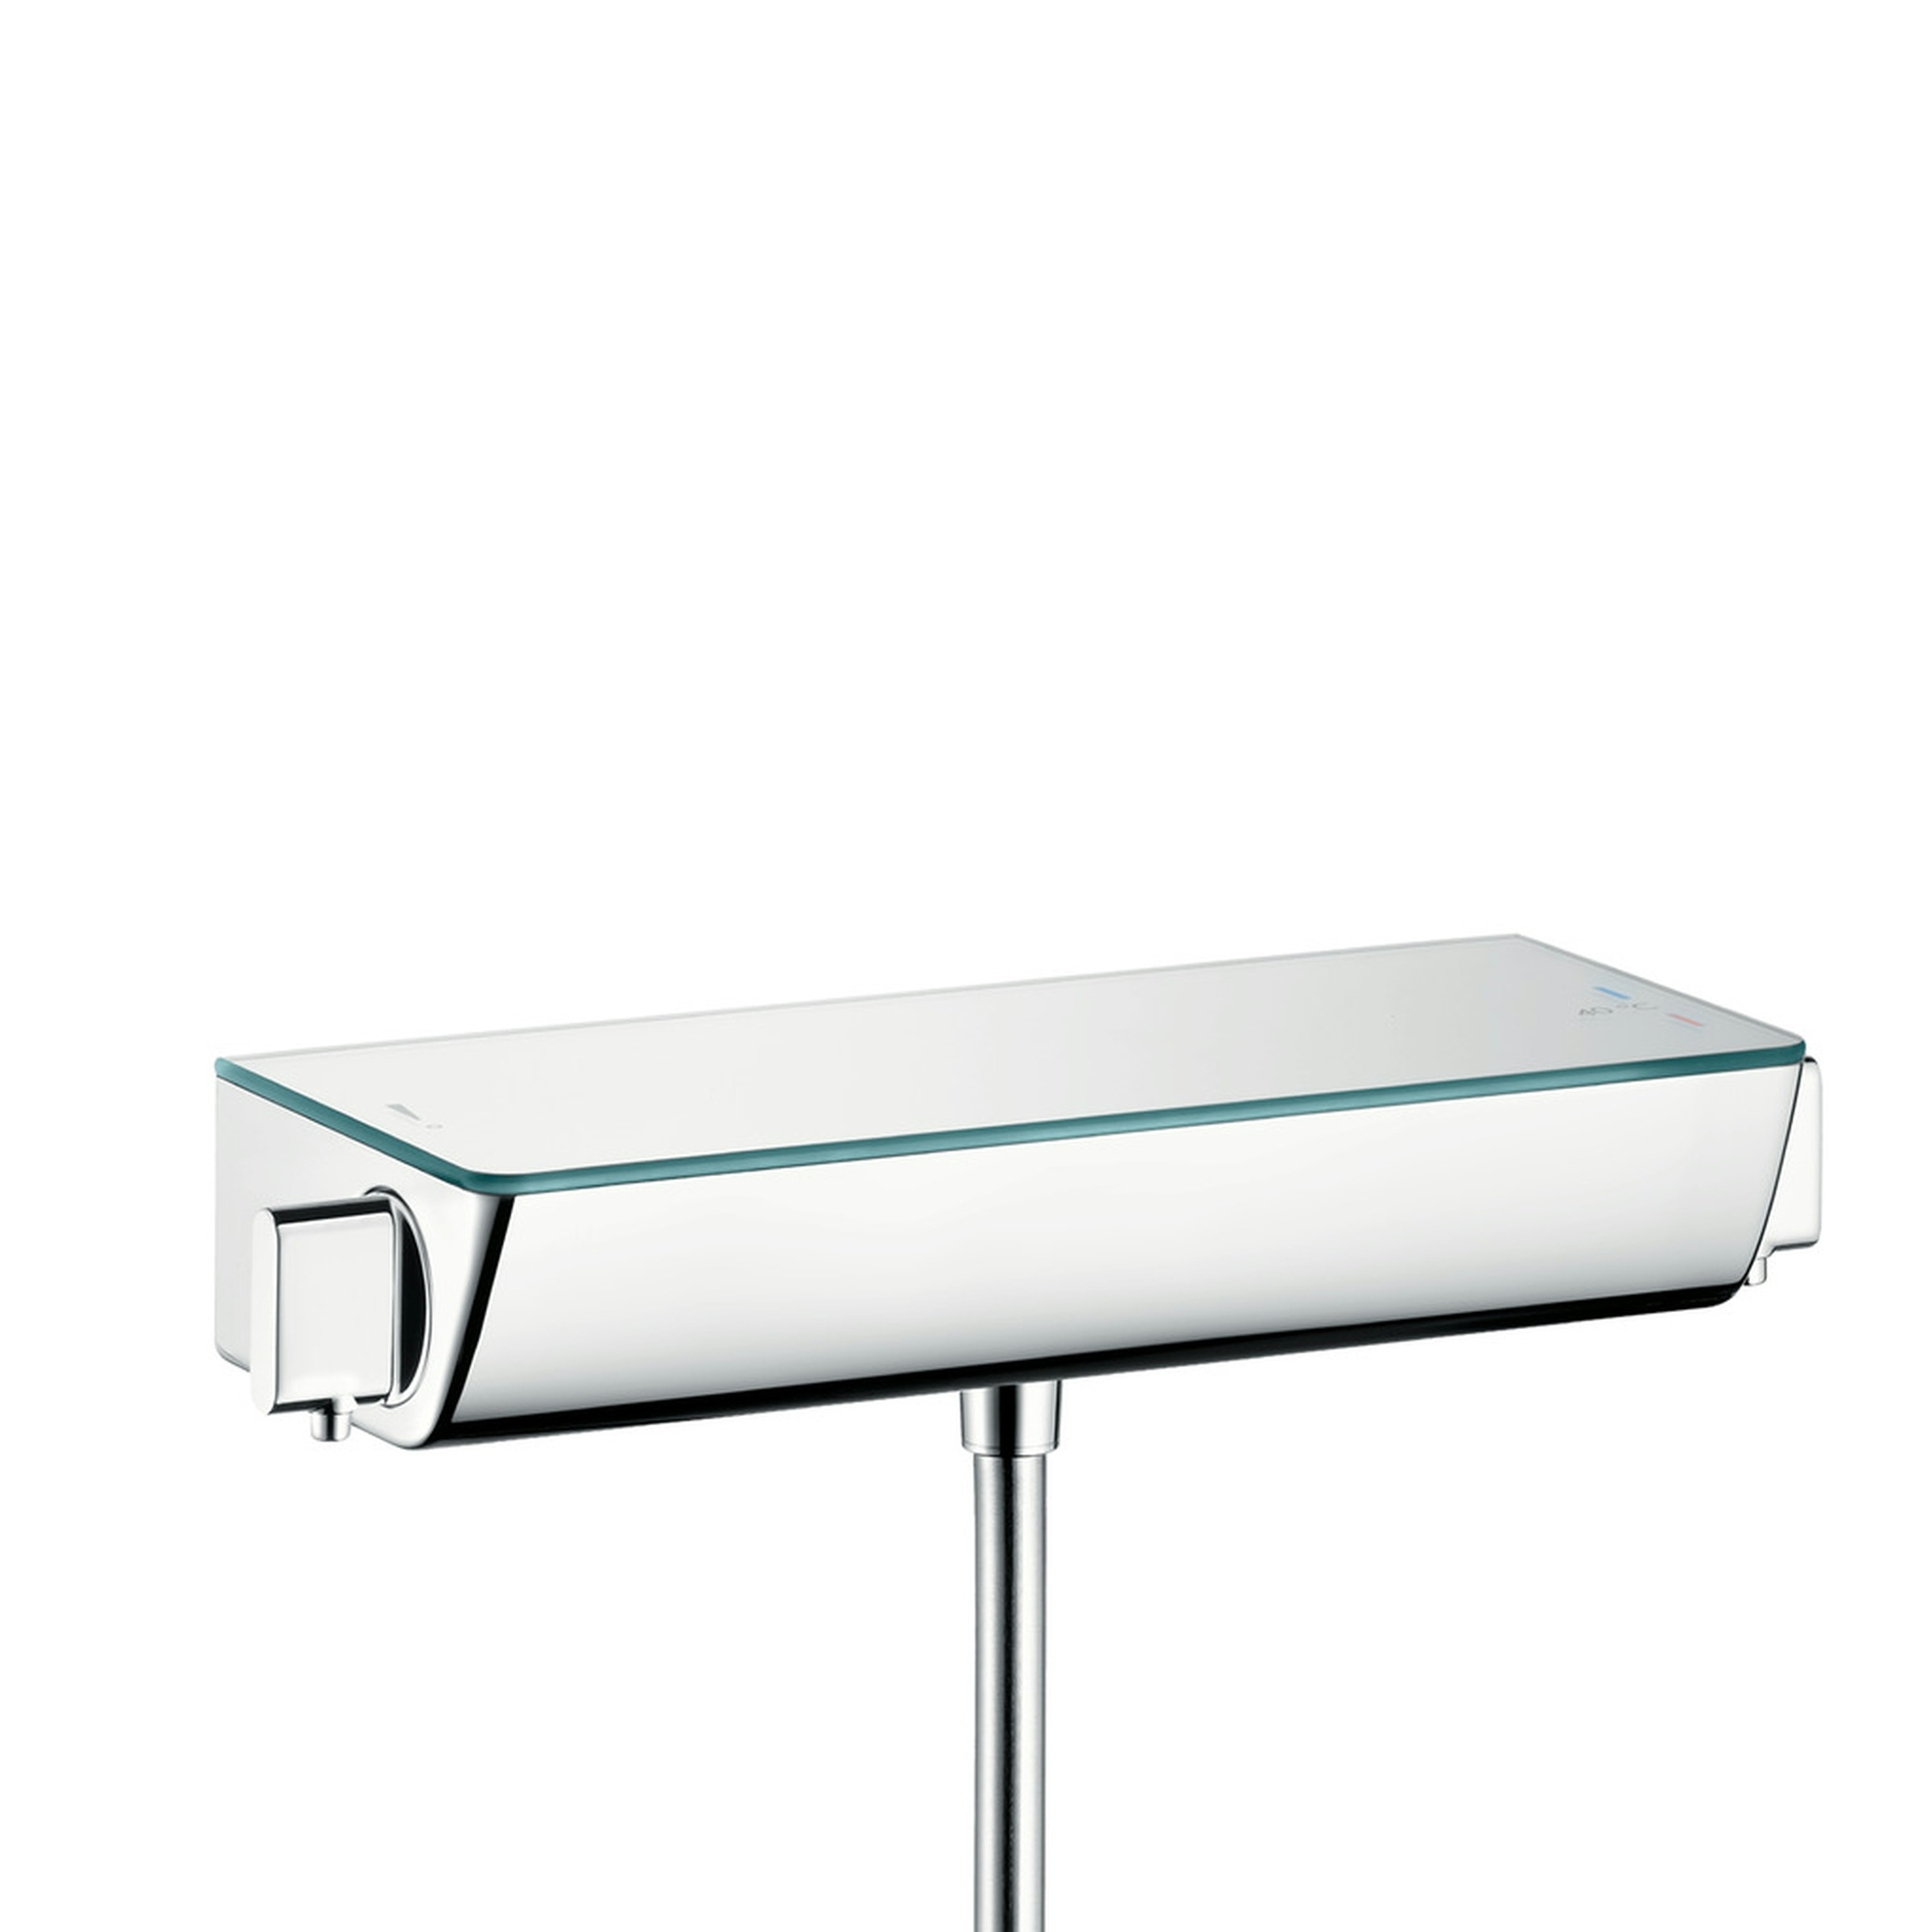 Hansgrohe Ecostat Select douche thermostaat kraan 15mm chroom 13161000